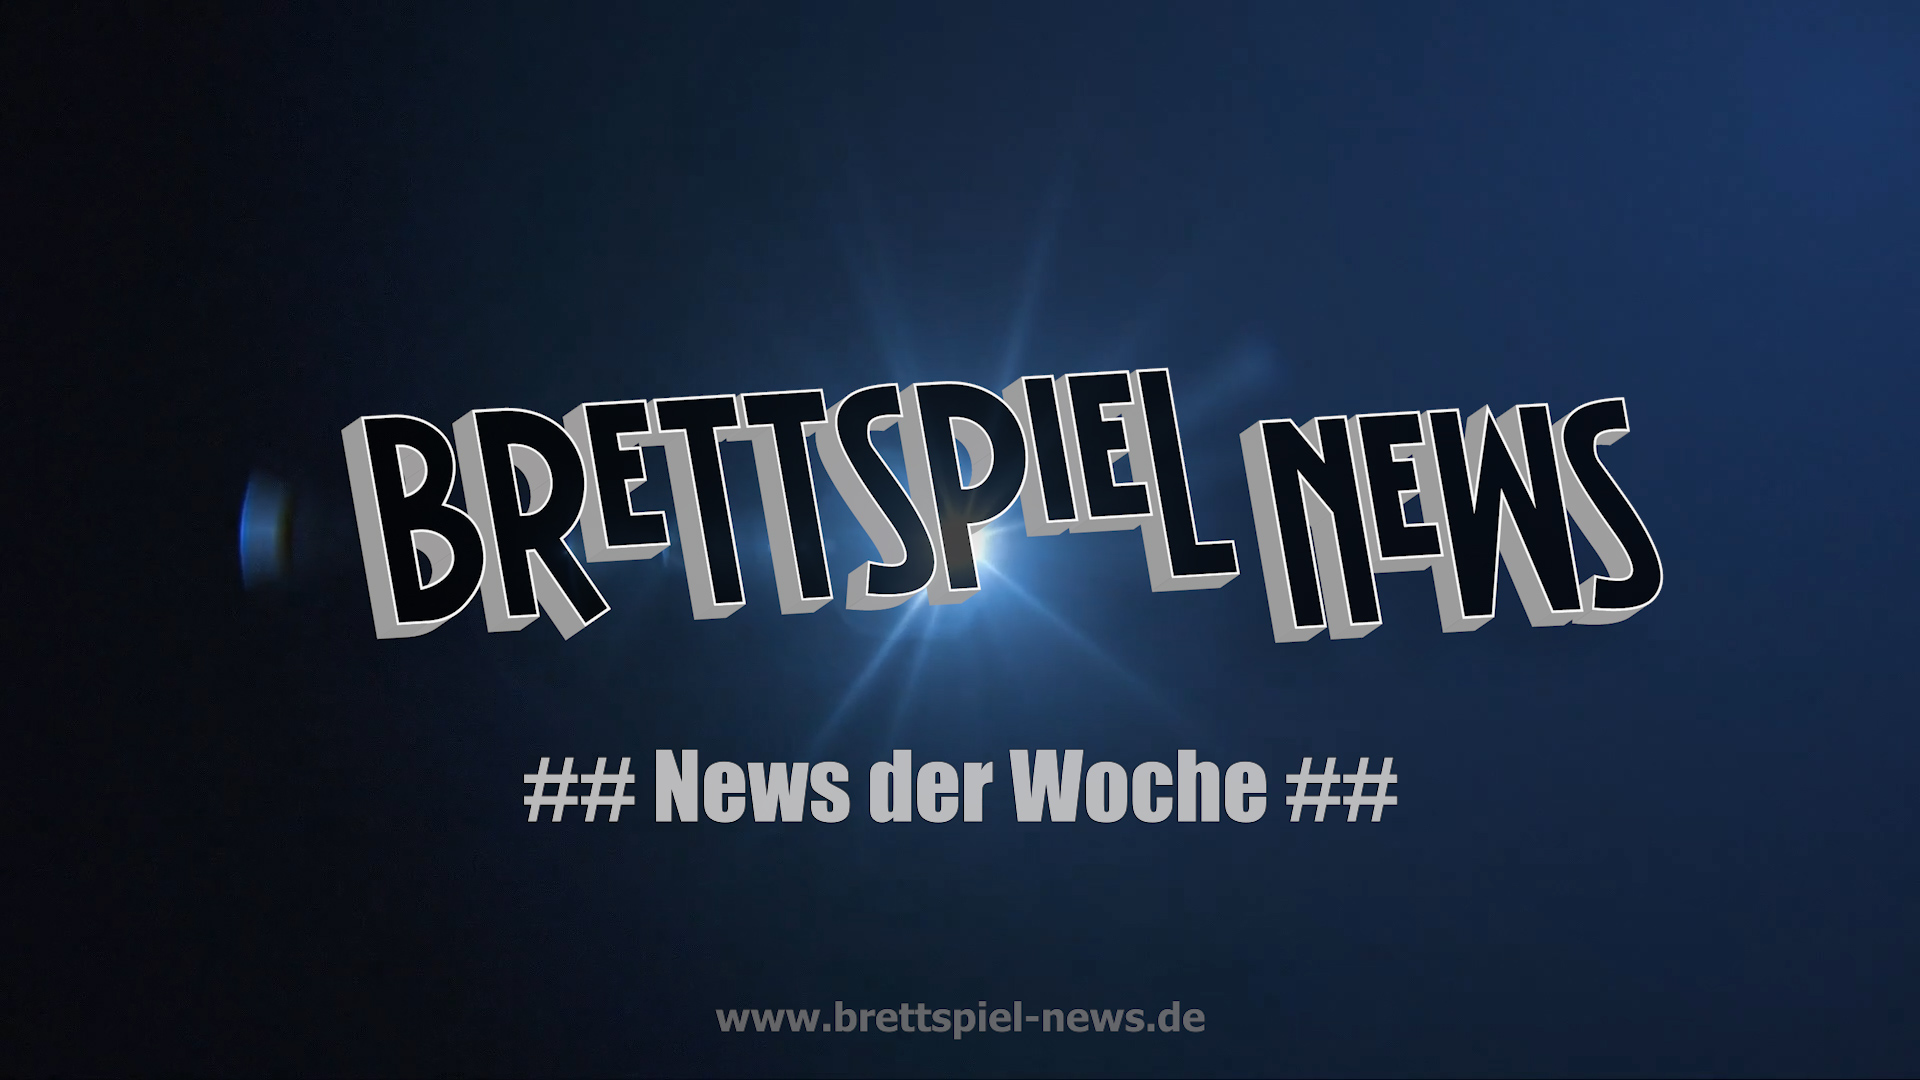 VIDEO // BrettspielNews - KW 10